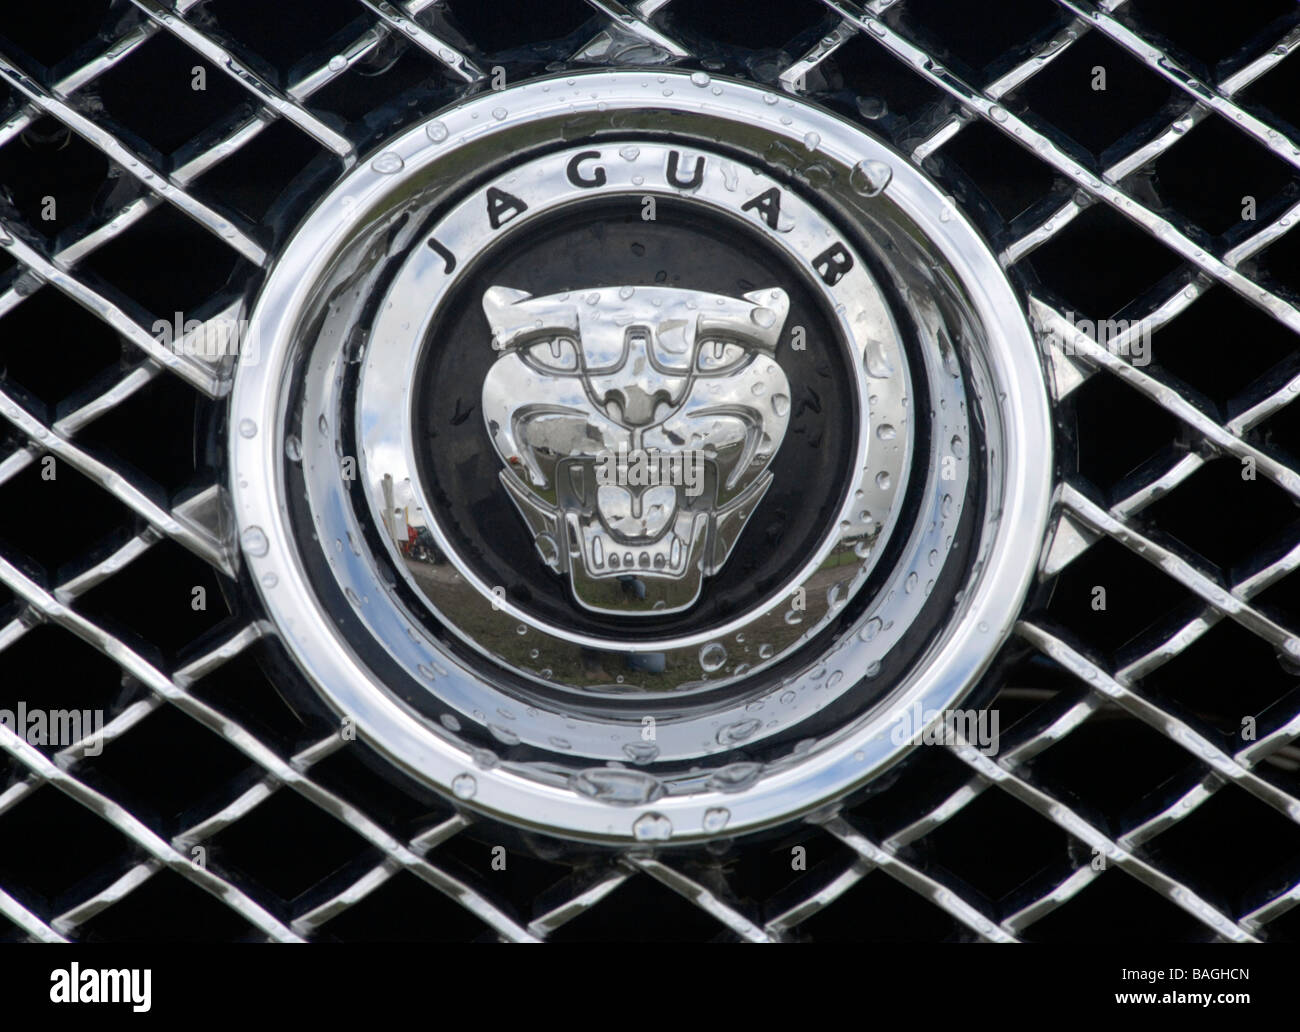 Jaguar Car Badge Stock Photos Jaguar Car Badge Stock Images Alamy